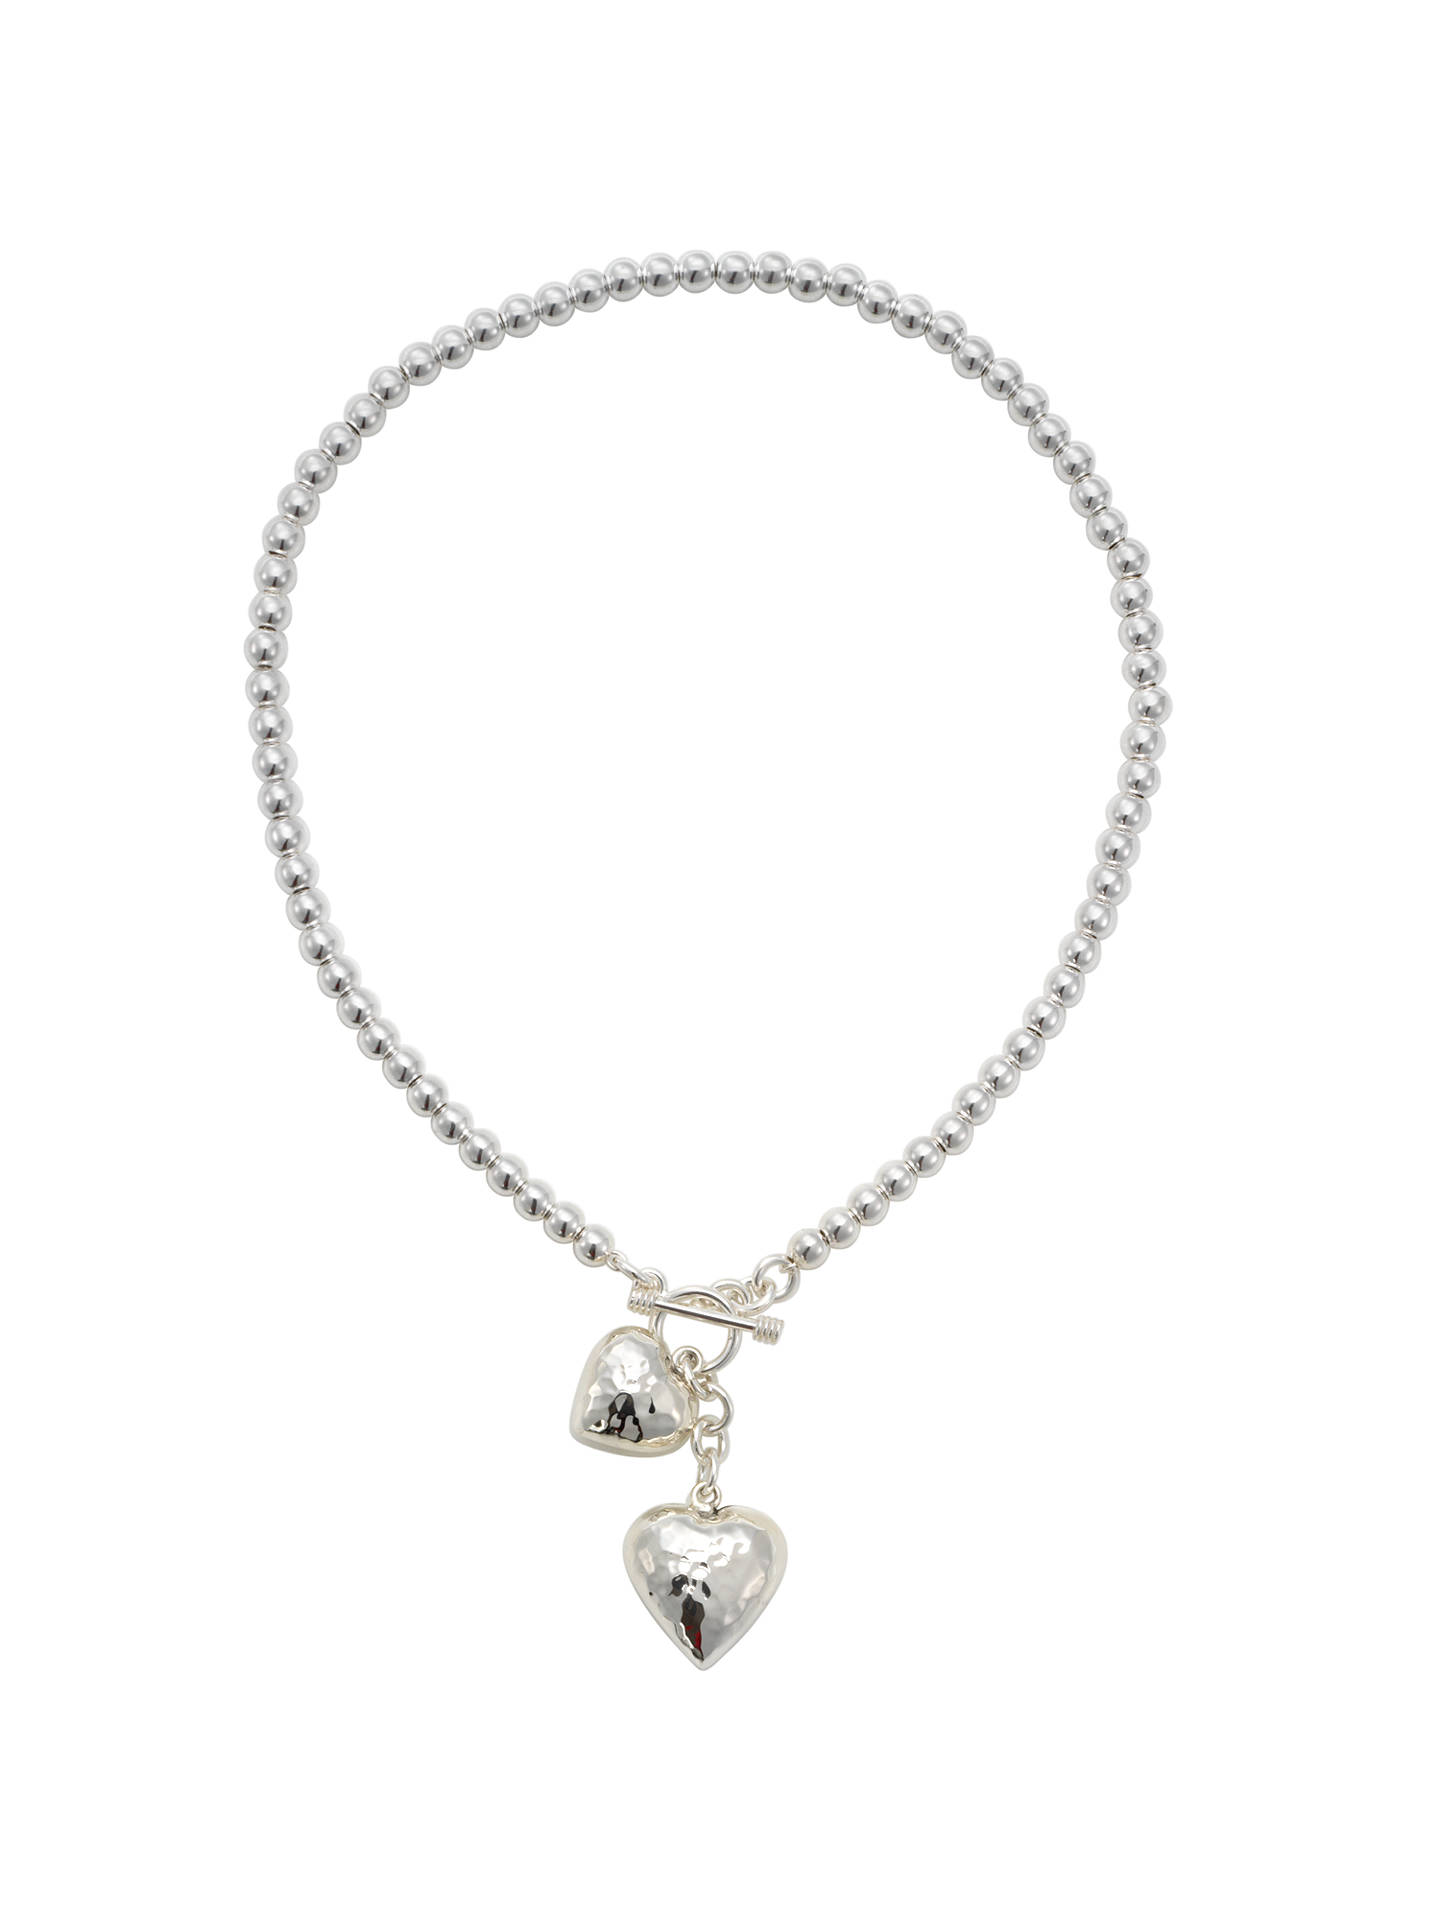 Buy Andea Silver Round Bead Necklace with Heart Charms Online at johnlewis.com